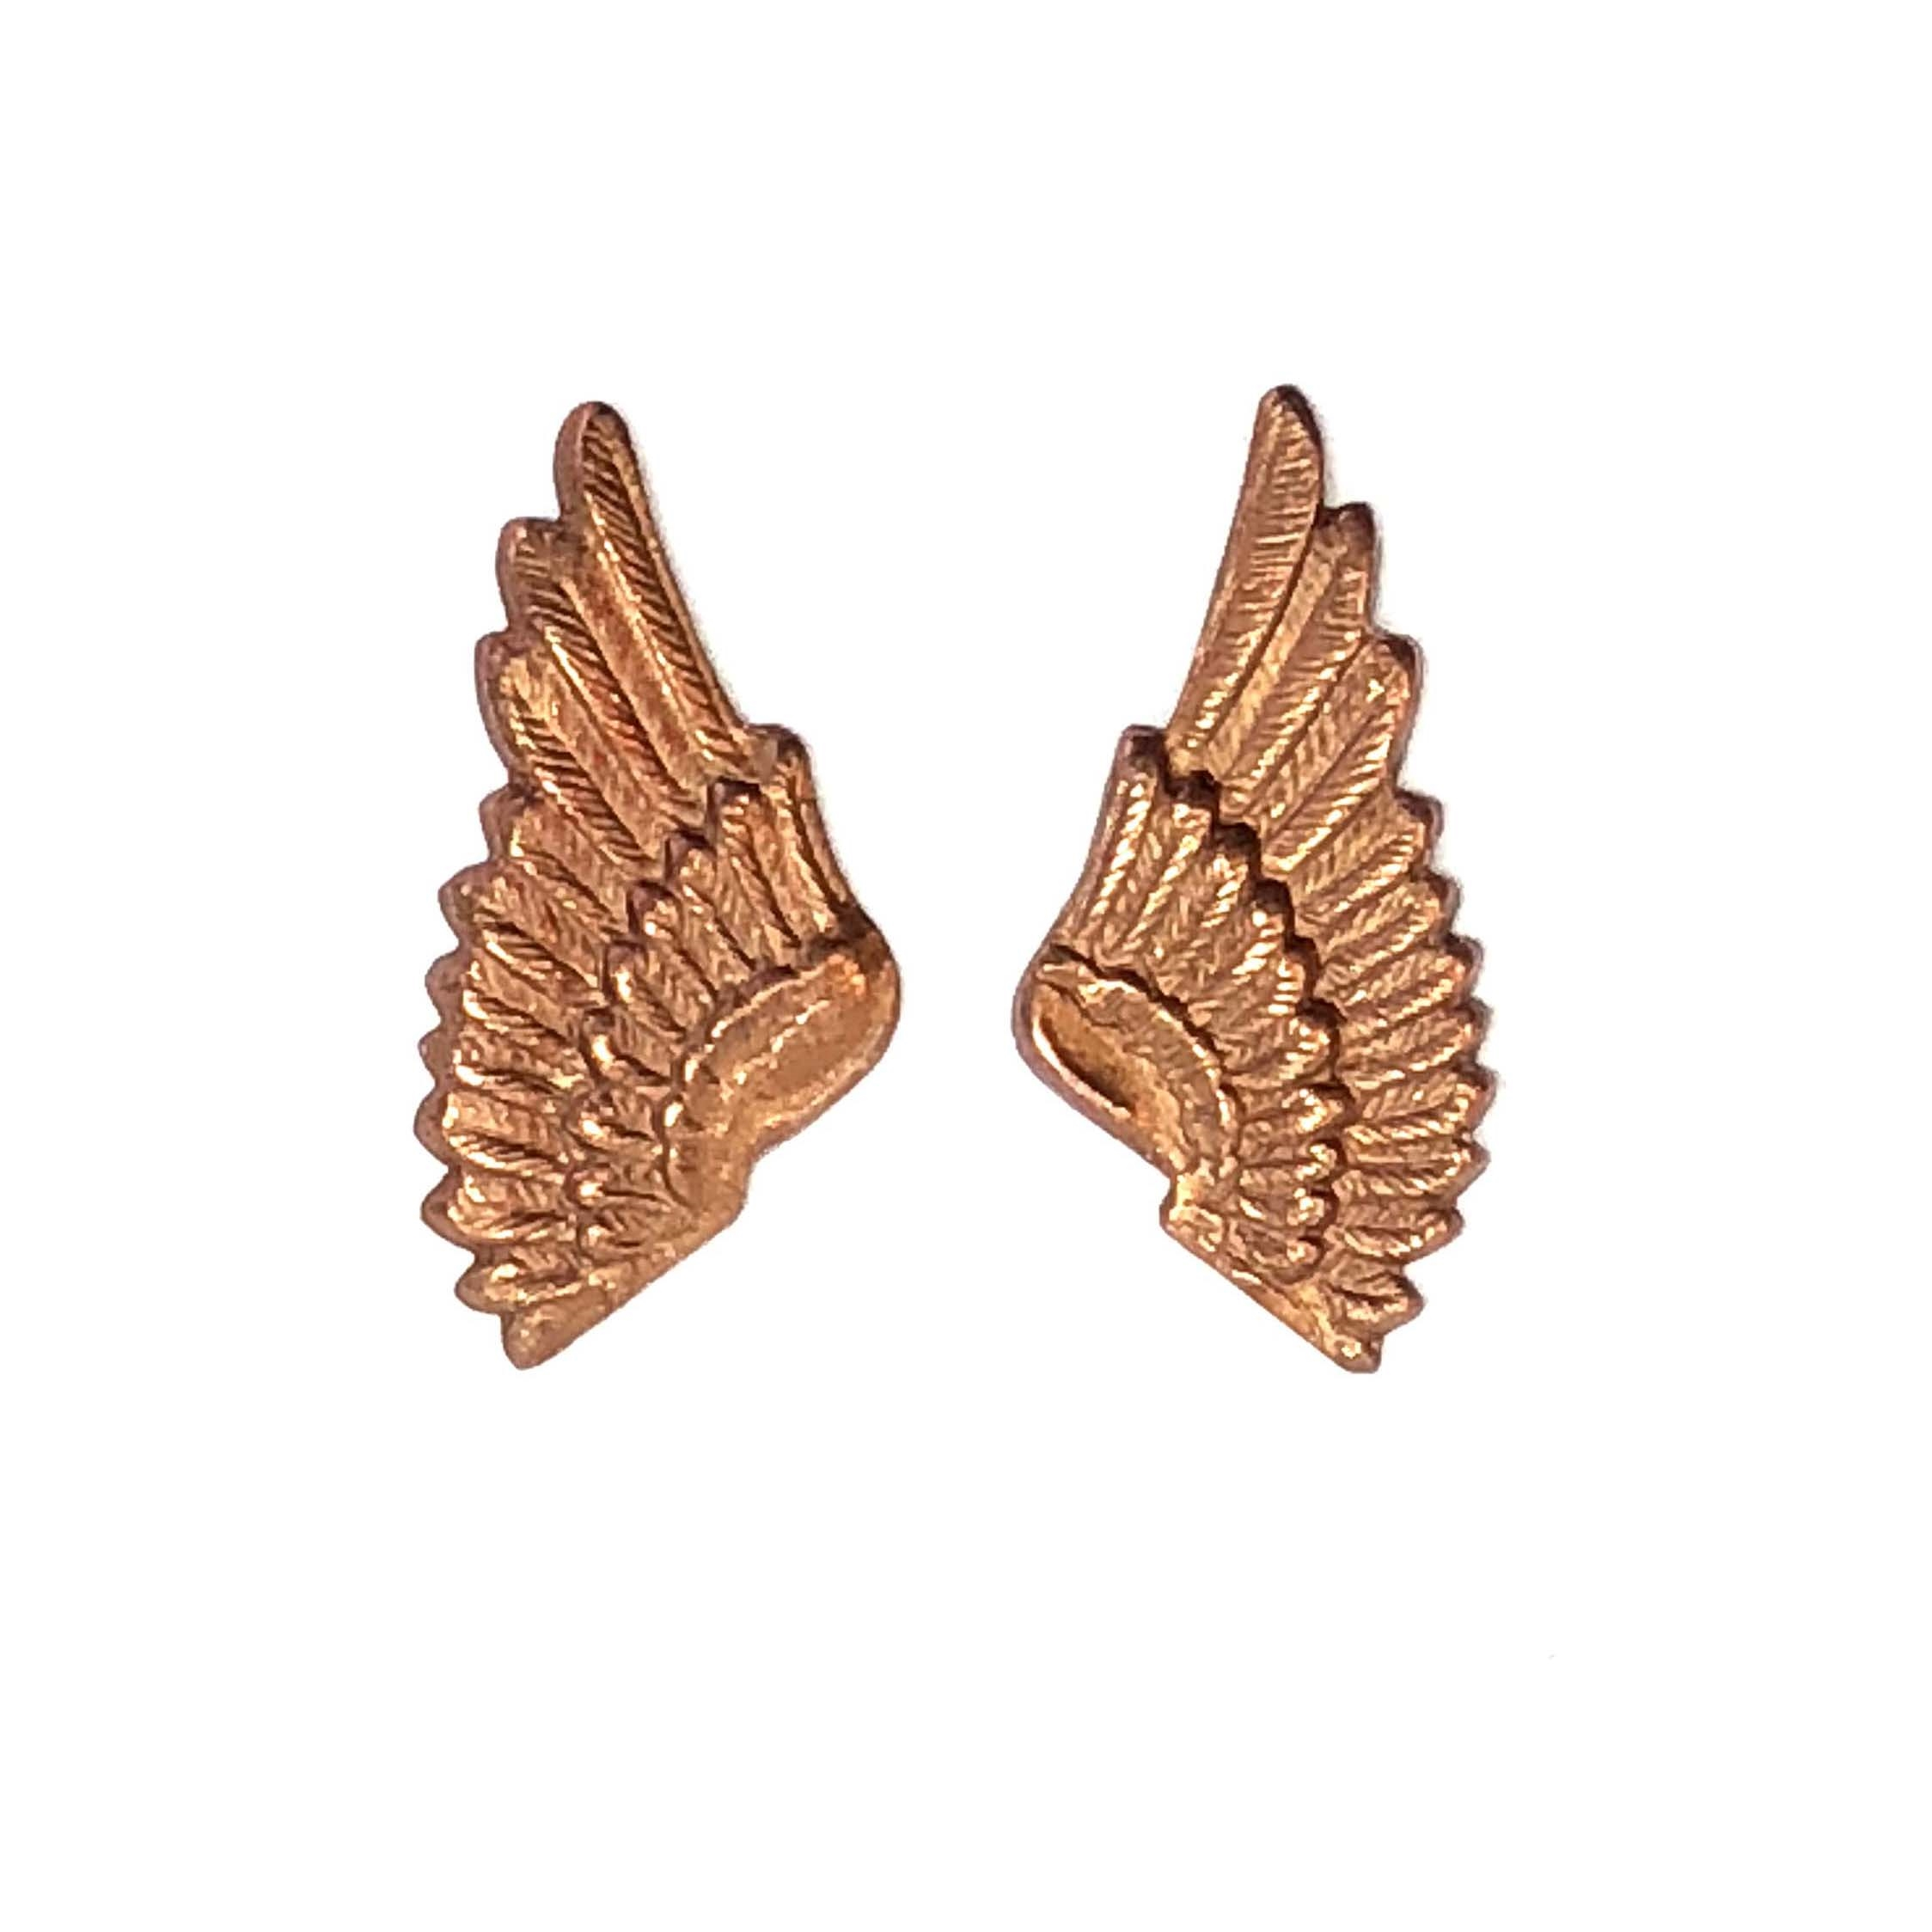 brass wings, bird wings, gingerbread brass, 0582, vintage jewelry supplies, brass jewelry parts, jewelry making supplies, US made, nickel free, Bsue Boutiques, embellishments, wings, steampunk